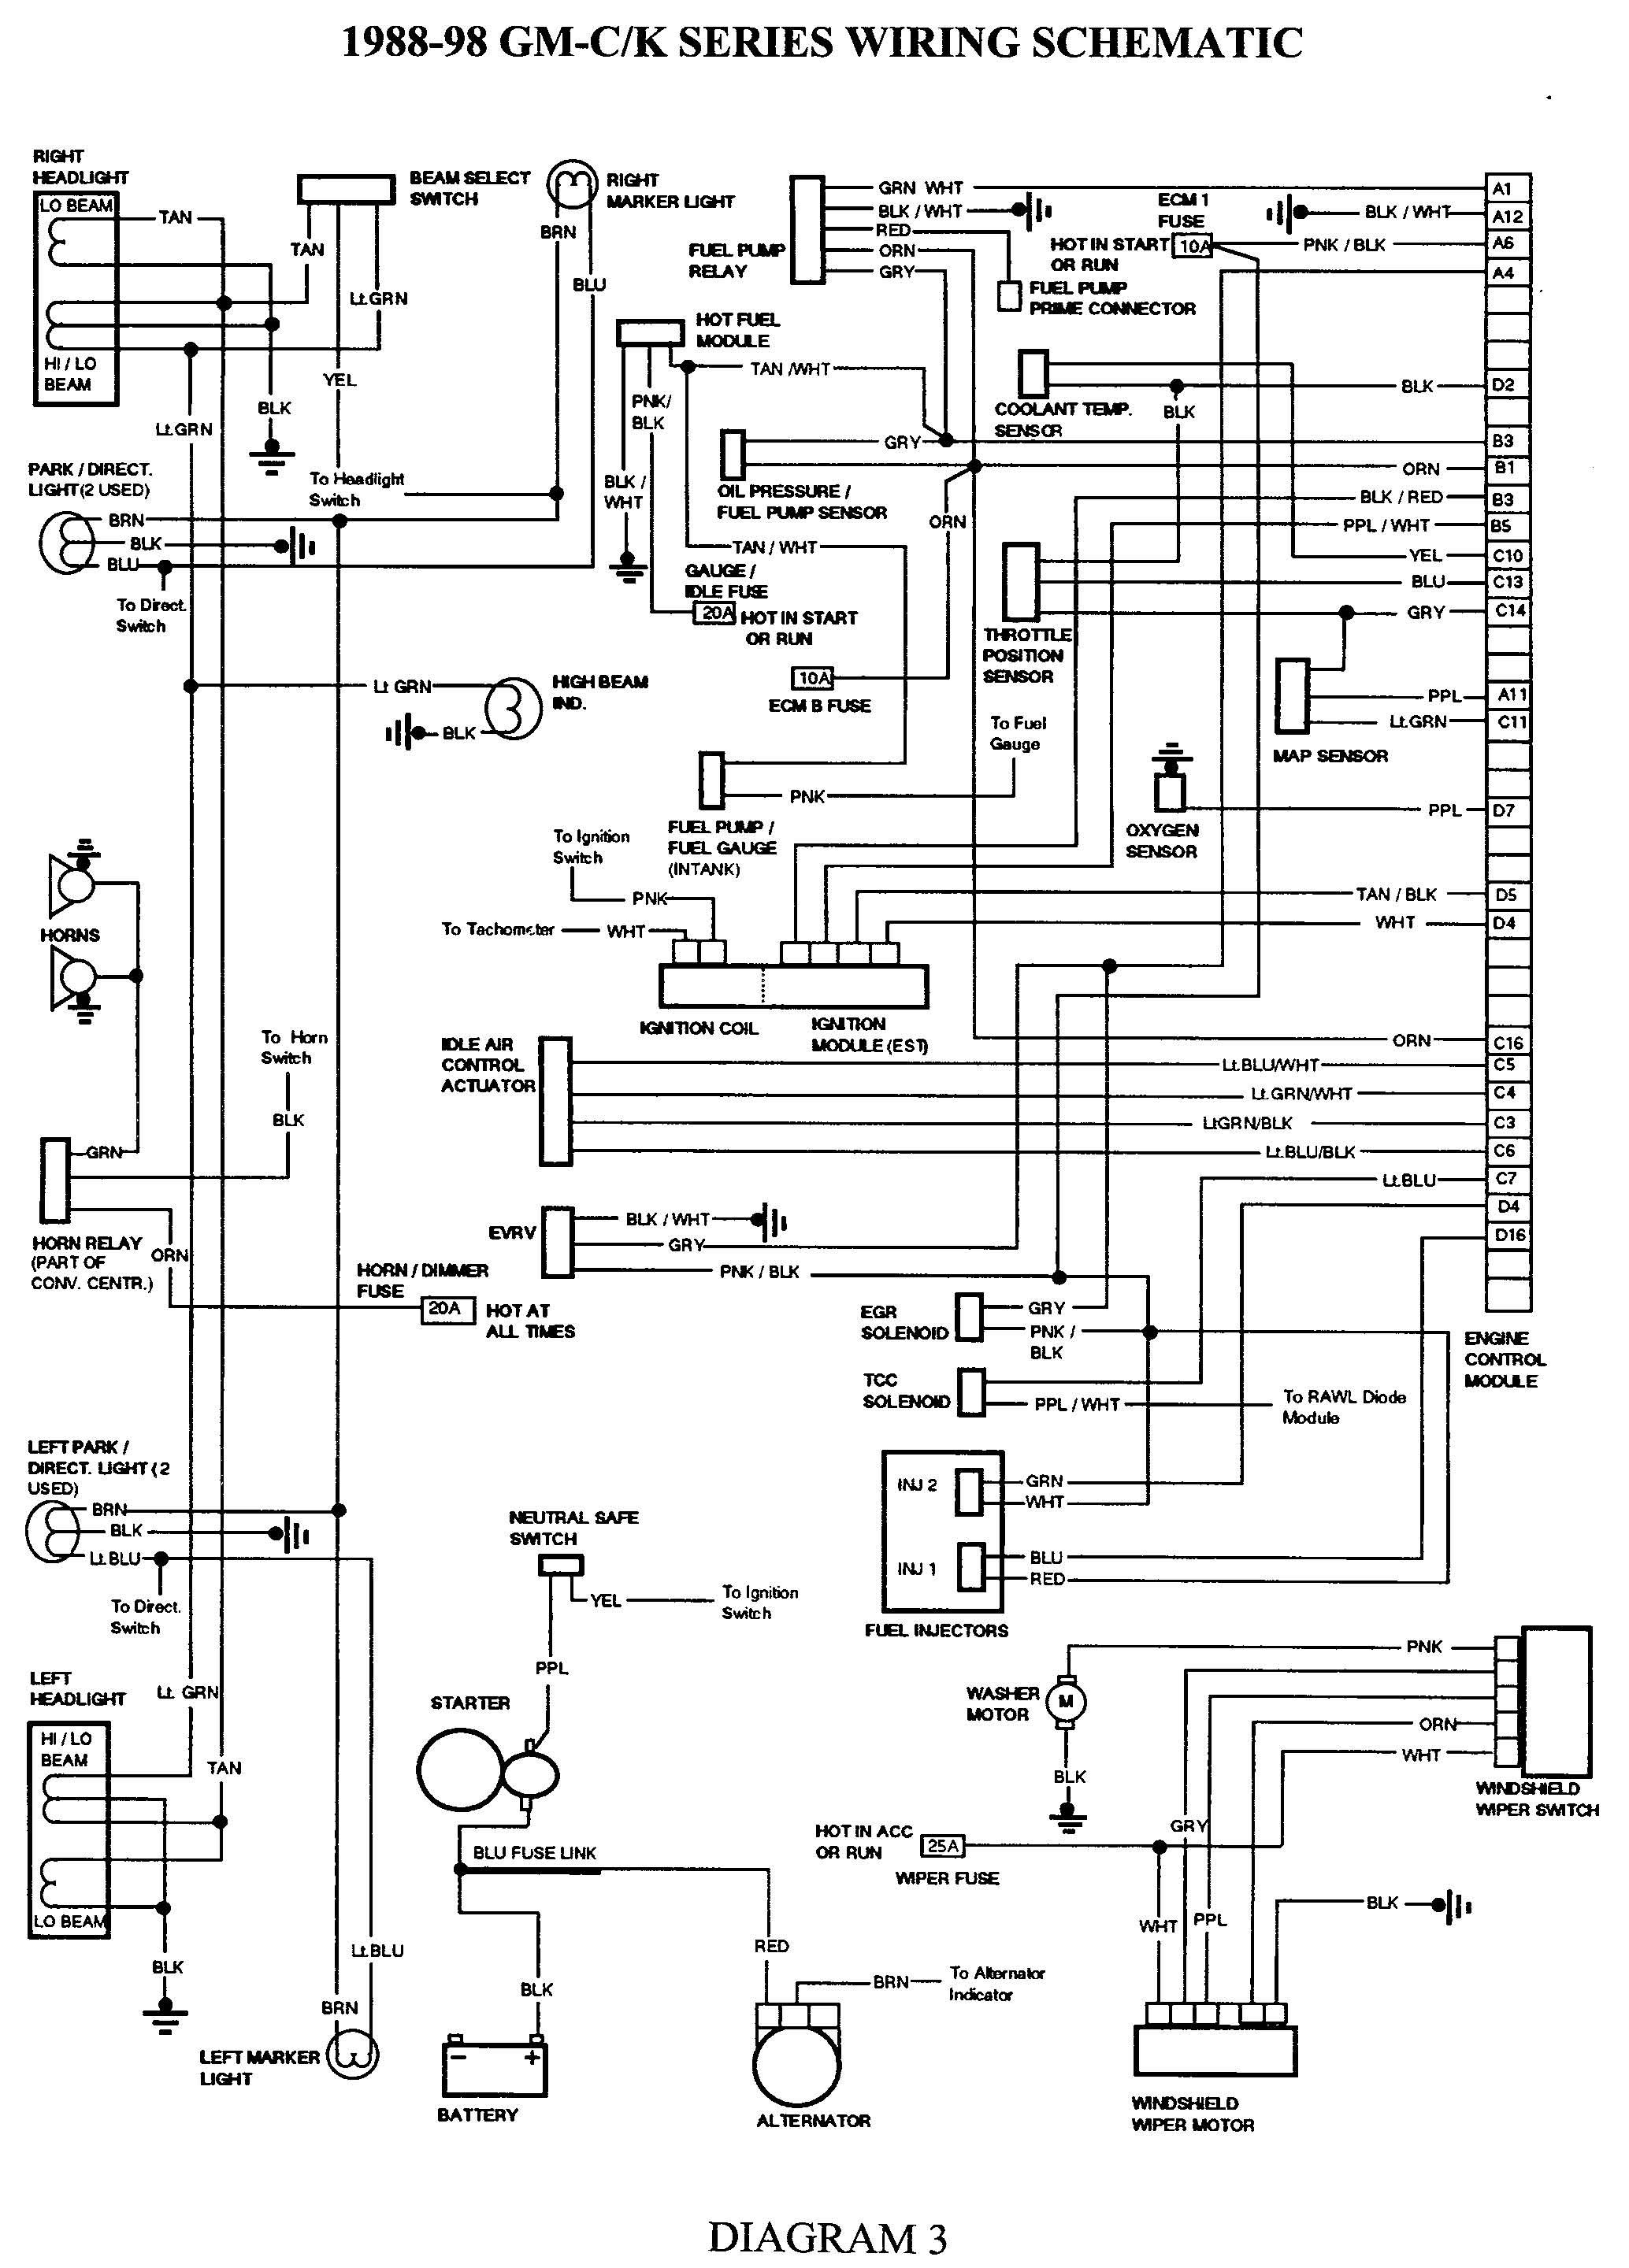 buell wiring diagram wiring diagrams best buell wiring diagram wiring diagrams schematic wiring diagram symbols 2008 buell wiring diagram wiring diagram data